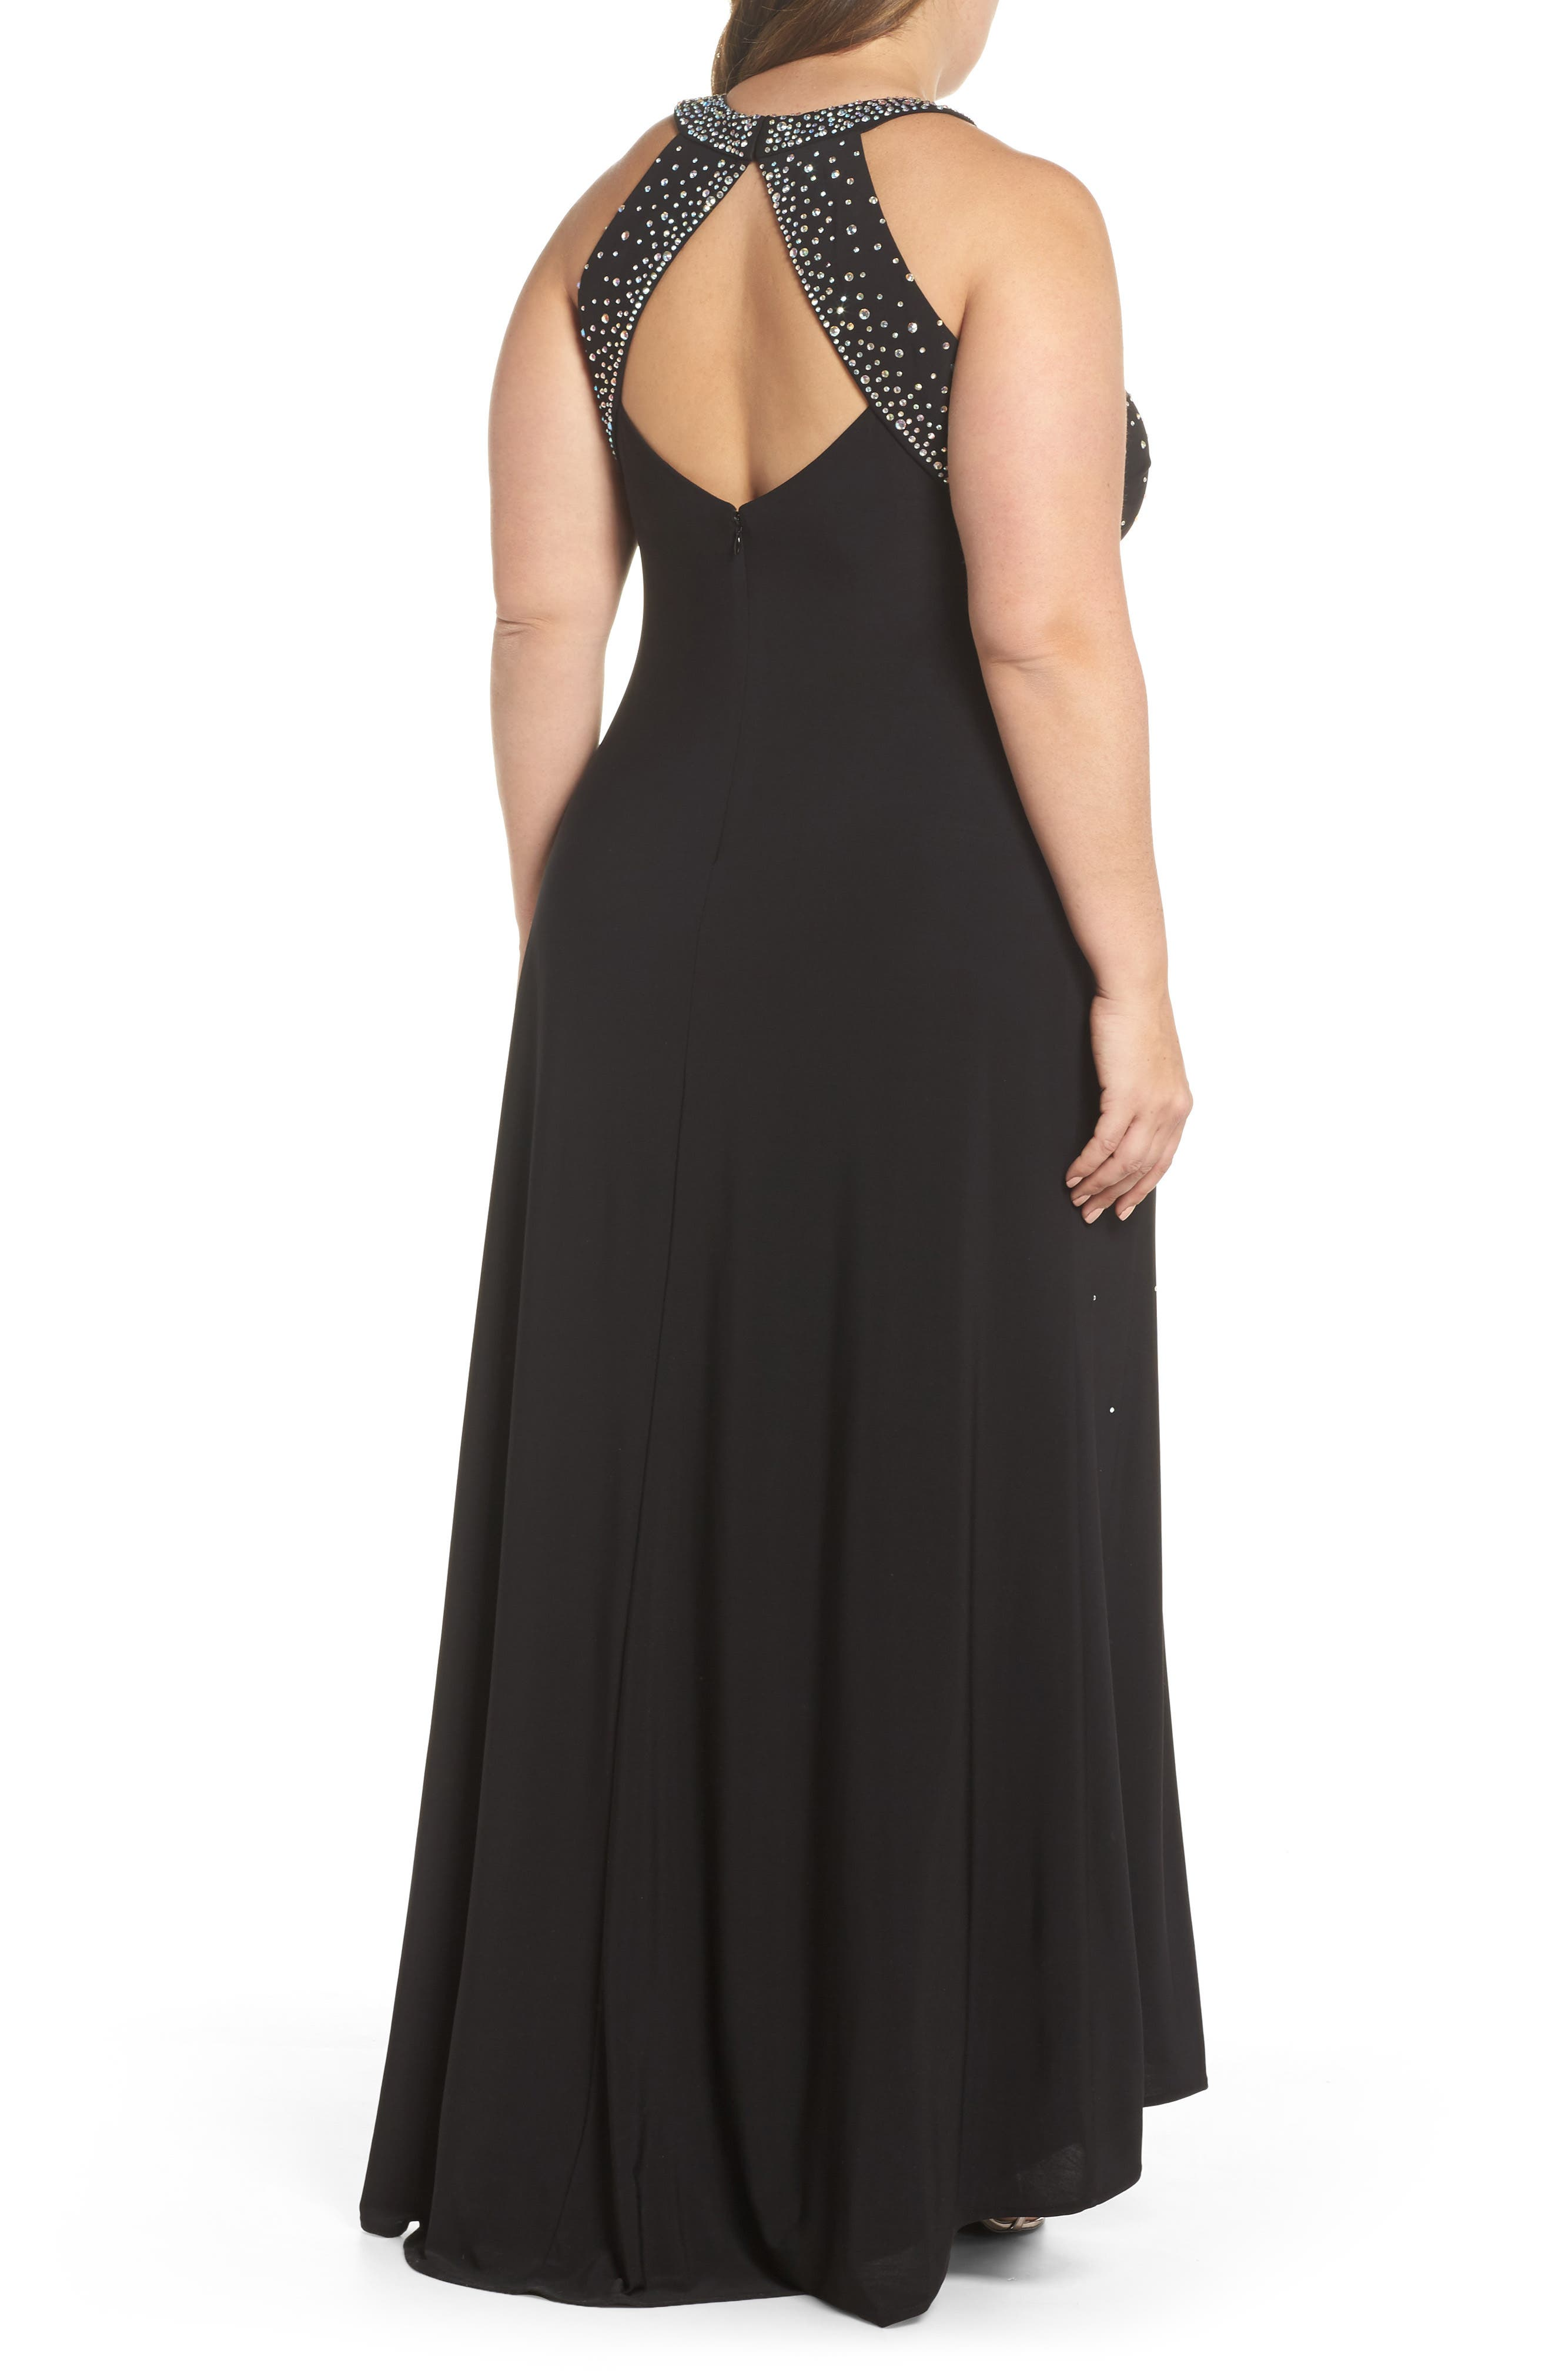 Heat Sealed Stone Knit Gown,                             Alternate thumbnail 2, color,                             BLACK